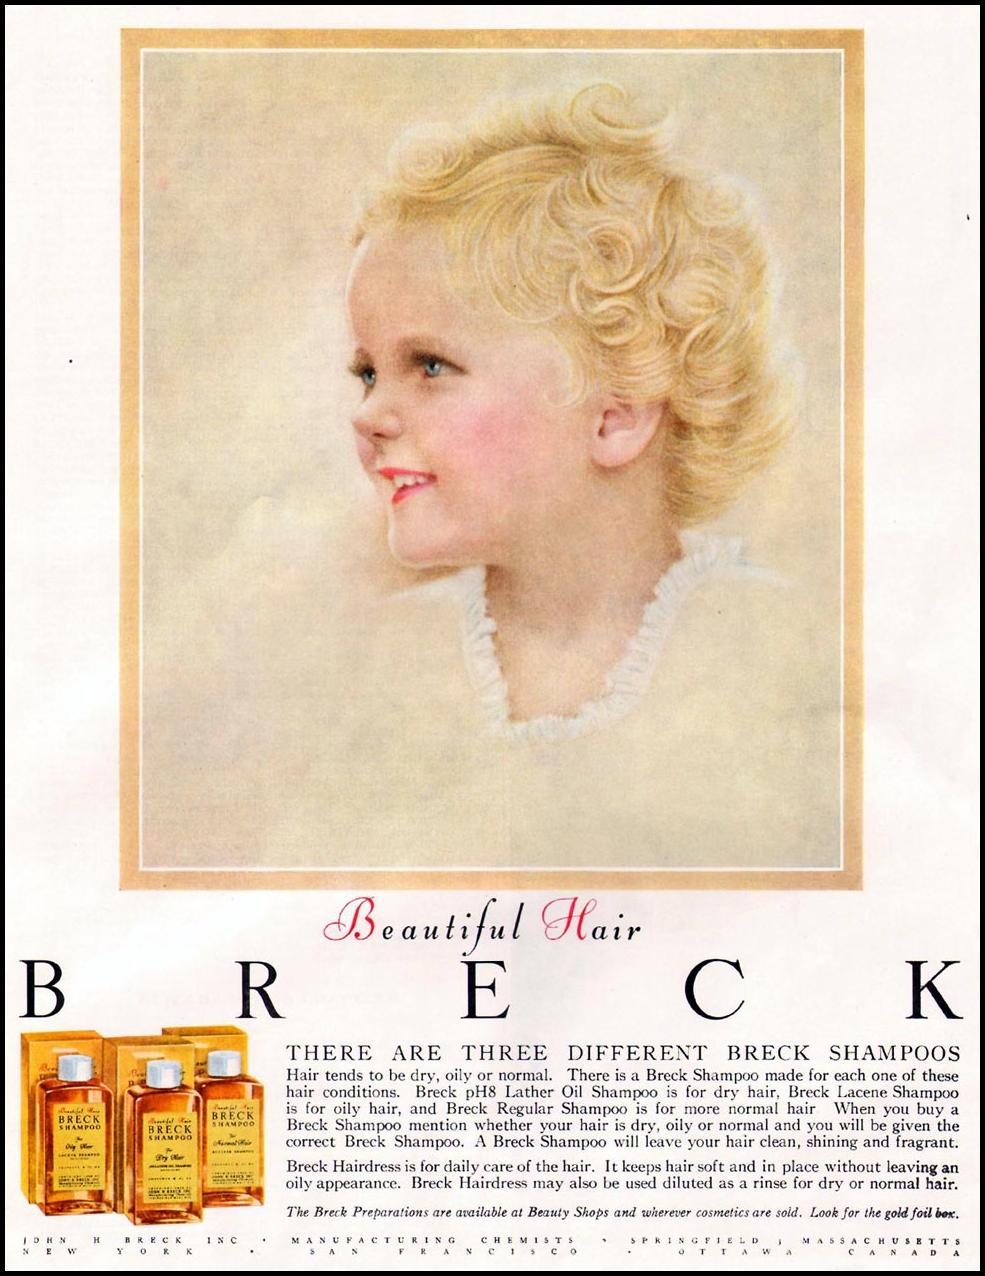 BRECK SHAMPOO LADIES' HOME JOURNAL 11/01/1950 p. 207